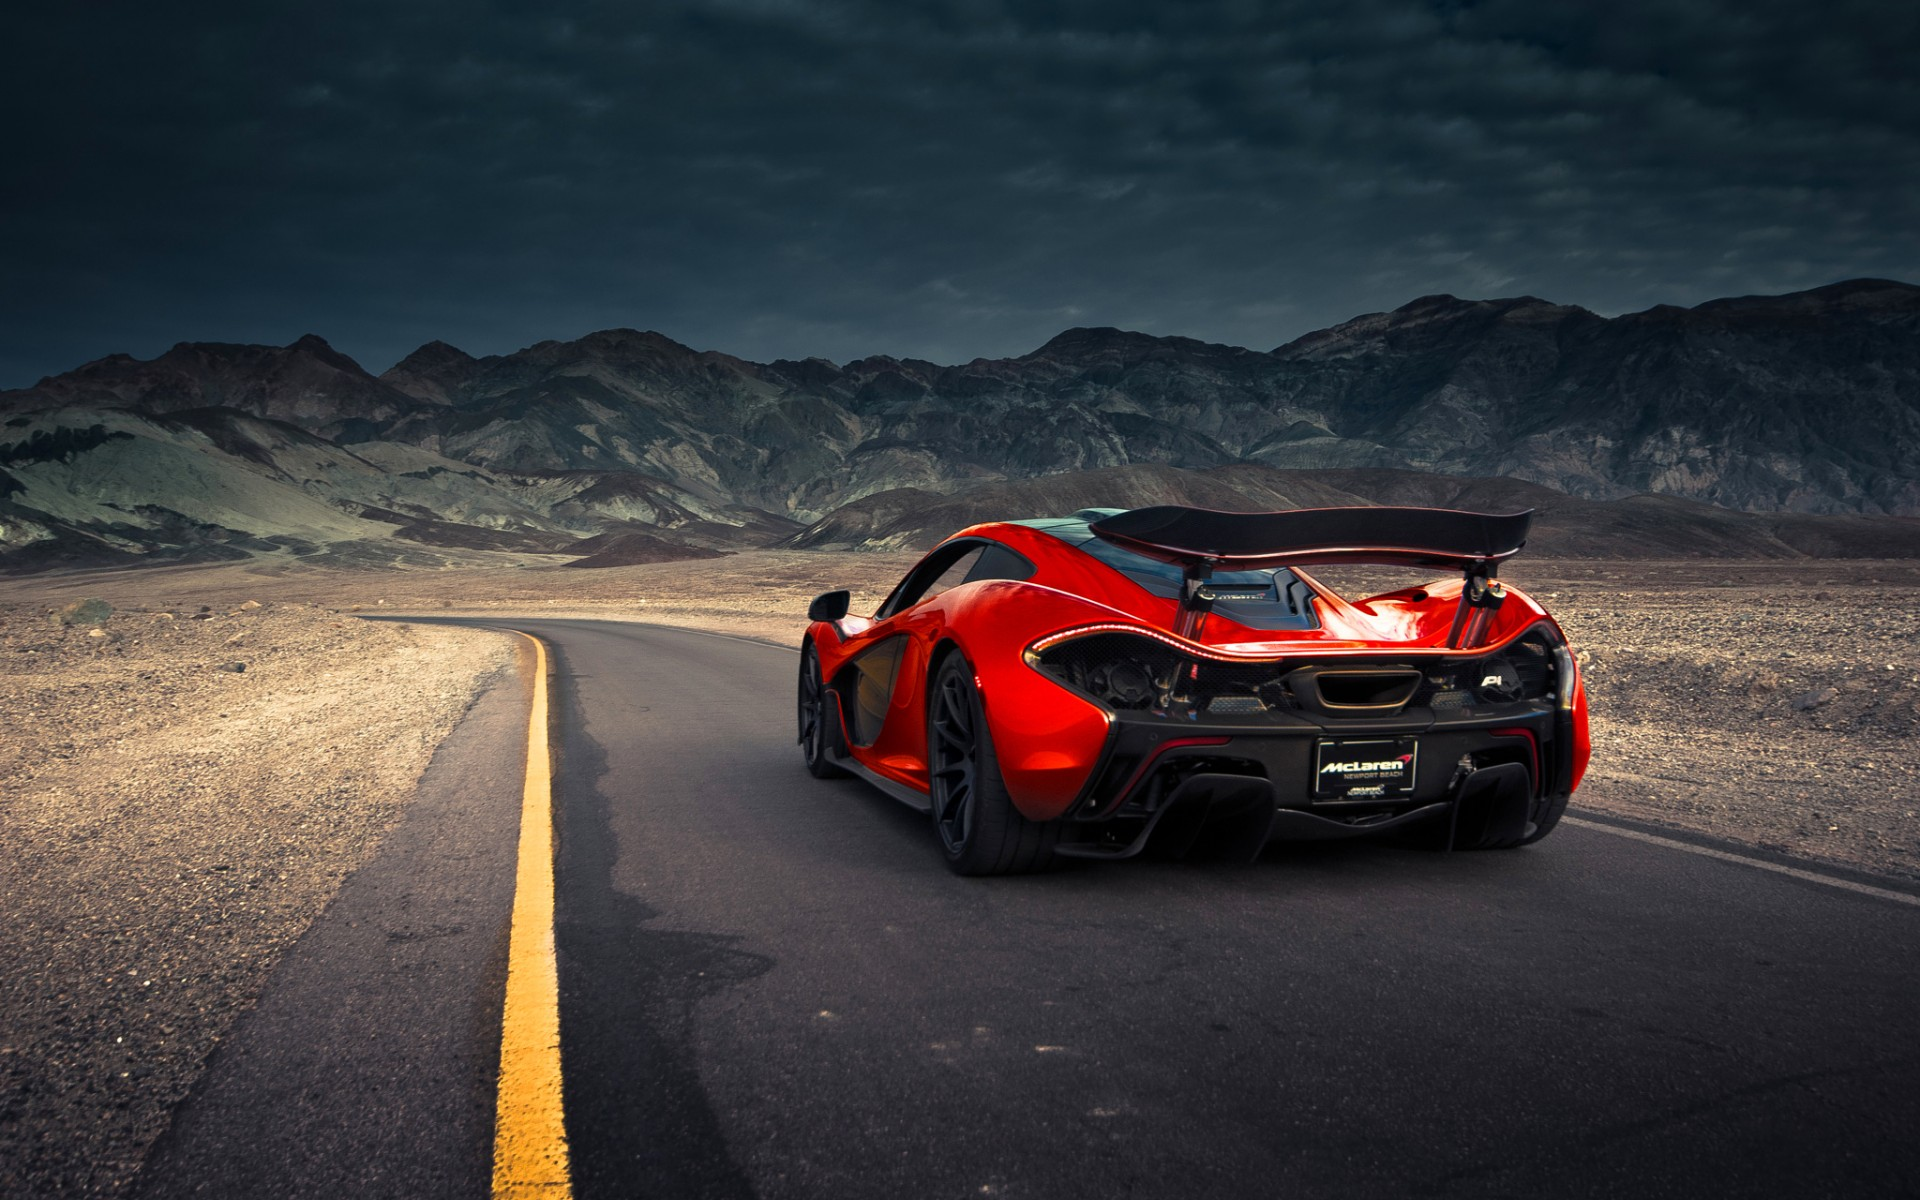 fast and furious 7 cars hd wallpapers 1080p